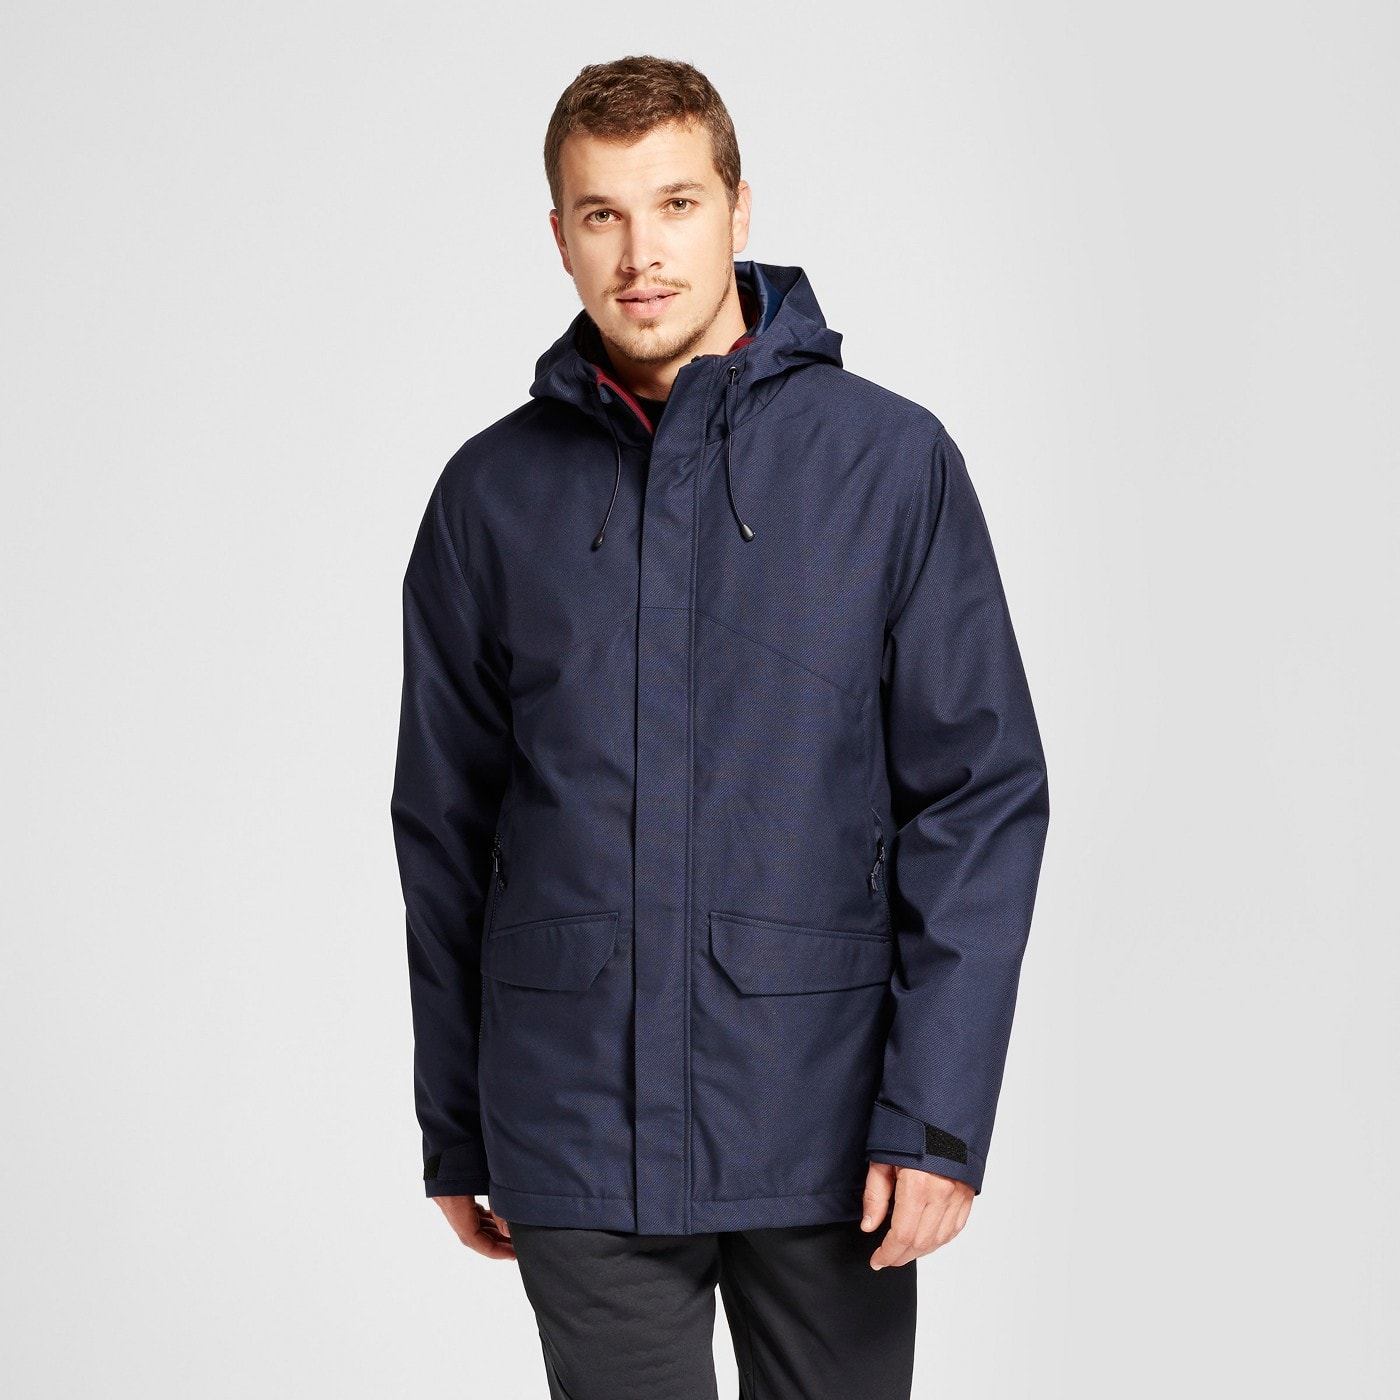 d53146ecd69 Men s 3-in-1 Jacket C9 Champion  23.98 (70% off)   Target ...